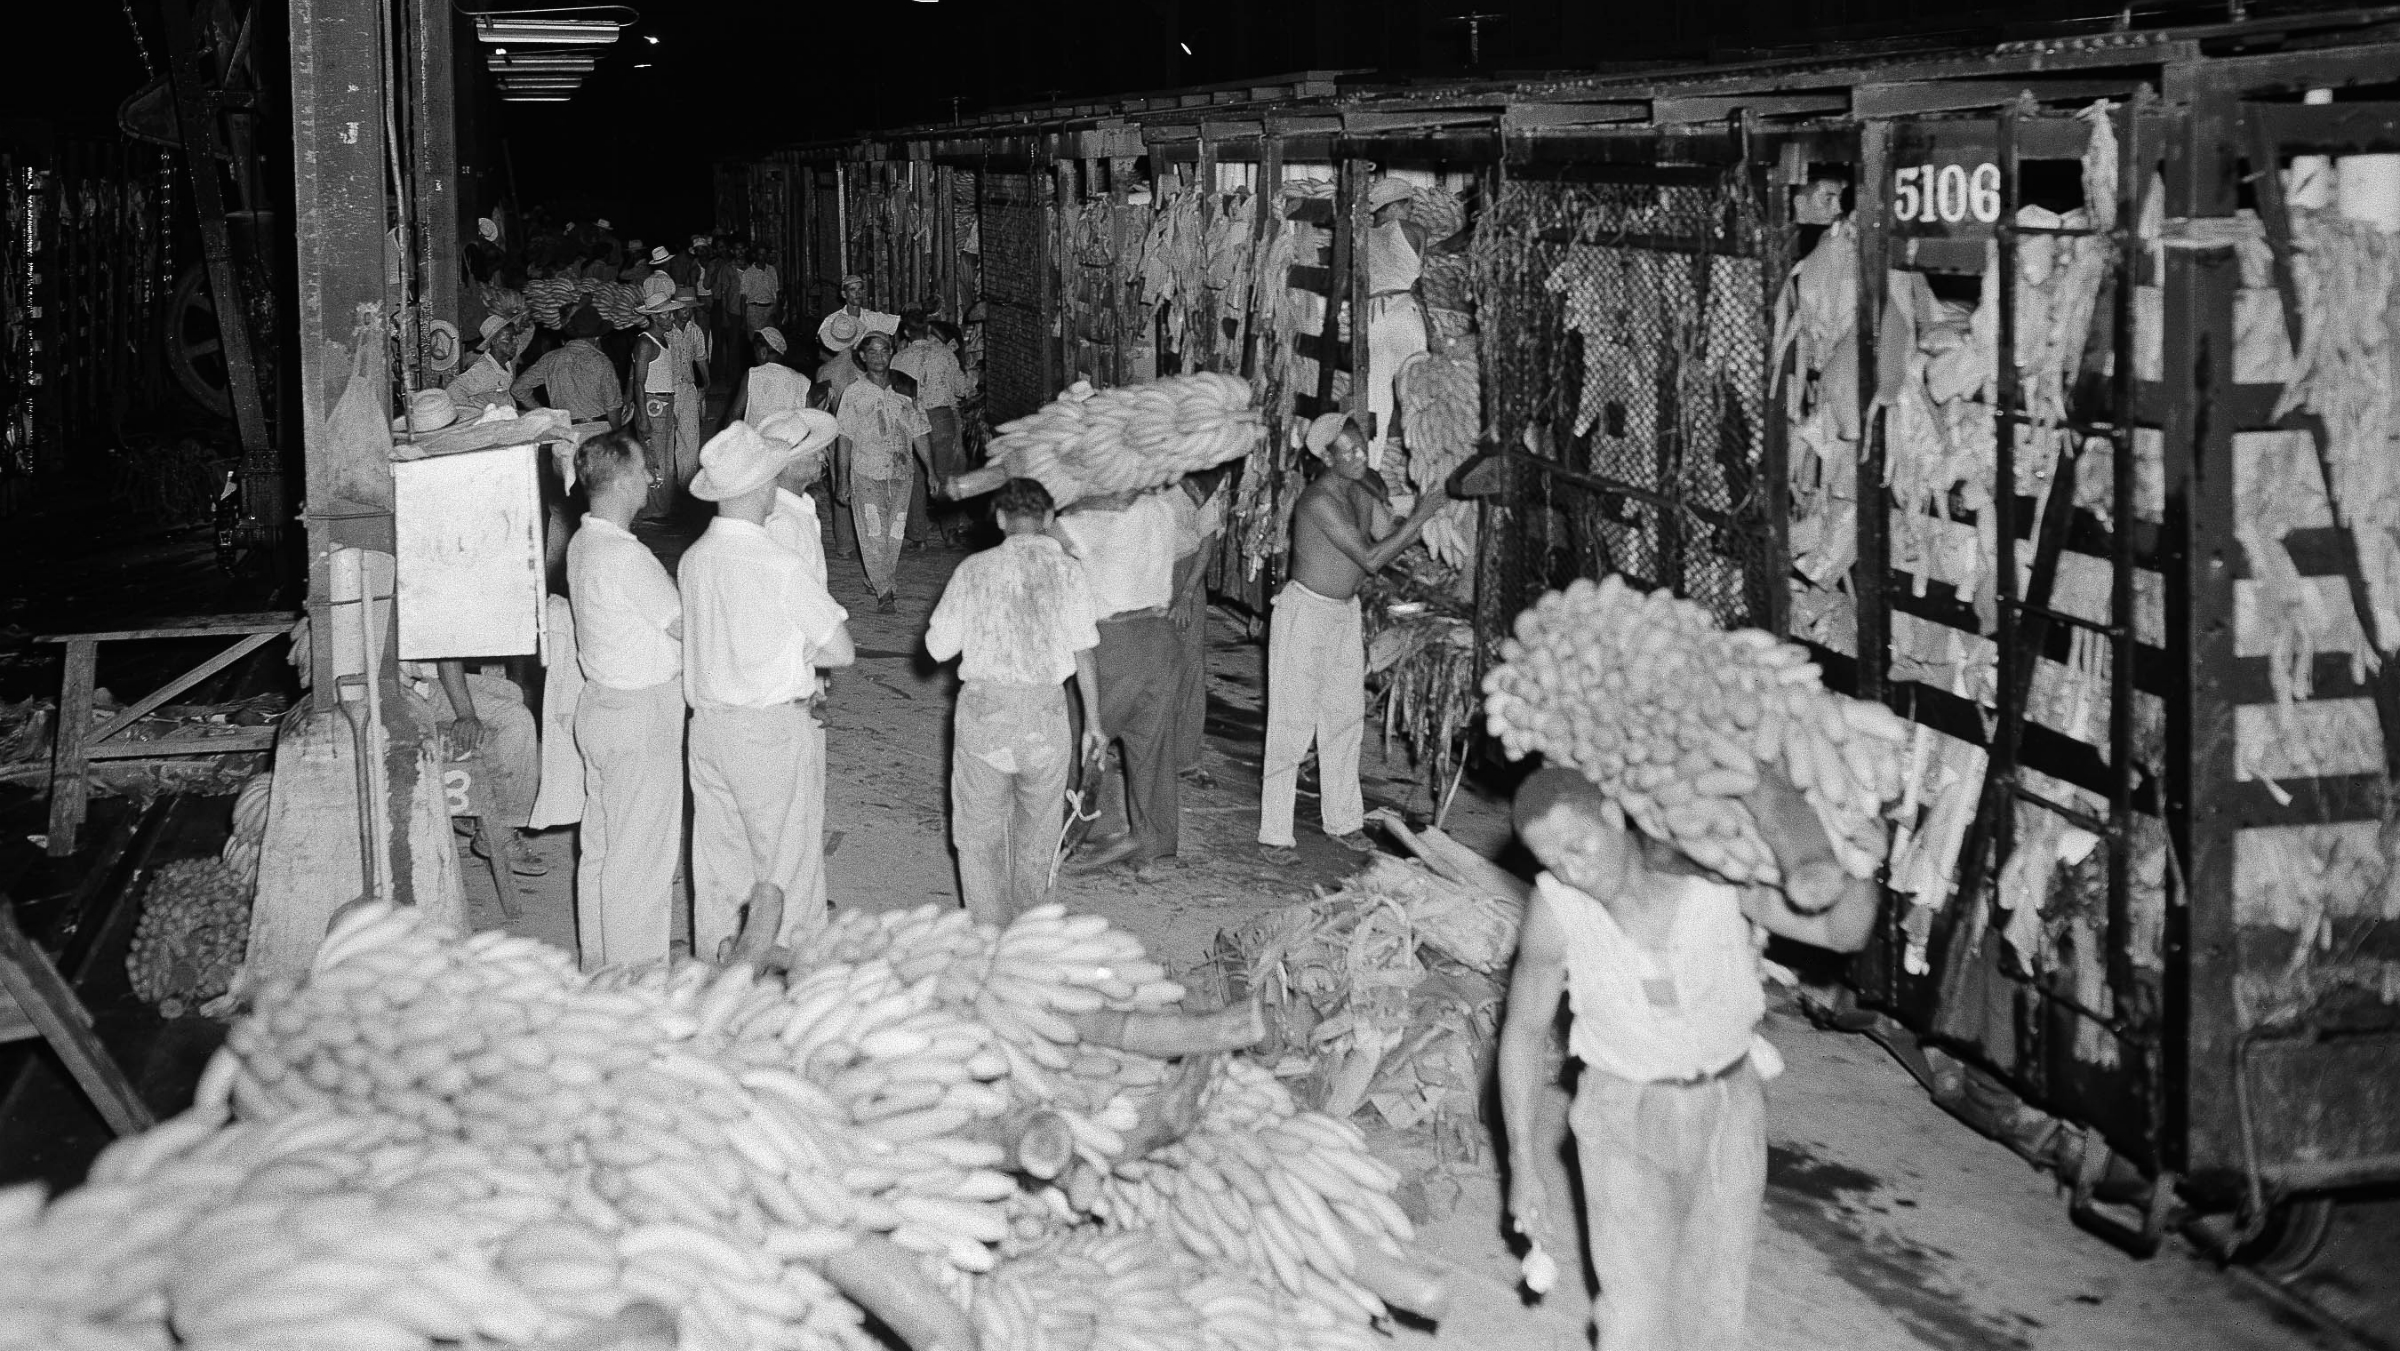 Banana loaders unload a car of bananas of the first shipment at the United Fruit Company docks for transfer to a waiting ship in Puerto Cortes, Honduras on Sept. 3, 1954. About 34,000 bunches made up the first shipment in over two months. In the foreground are bunches of bananas rejected for shipment because of over-ripeness. These will be given to workers for their consumption. (AP Photo